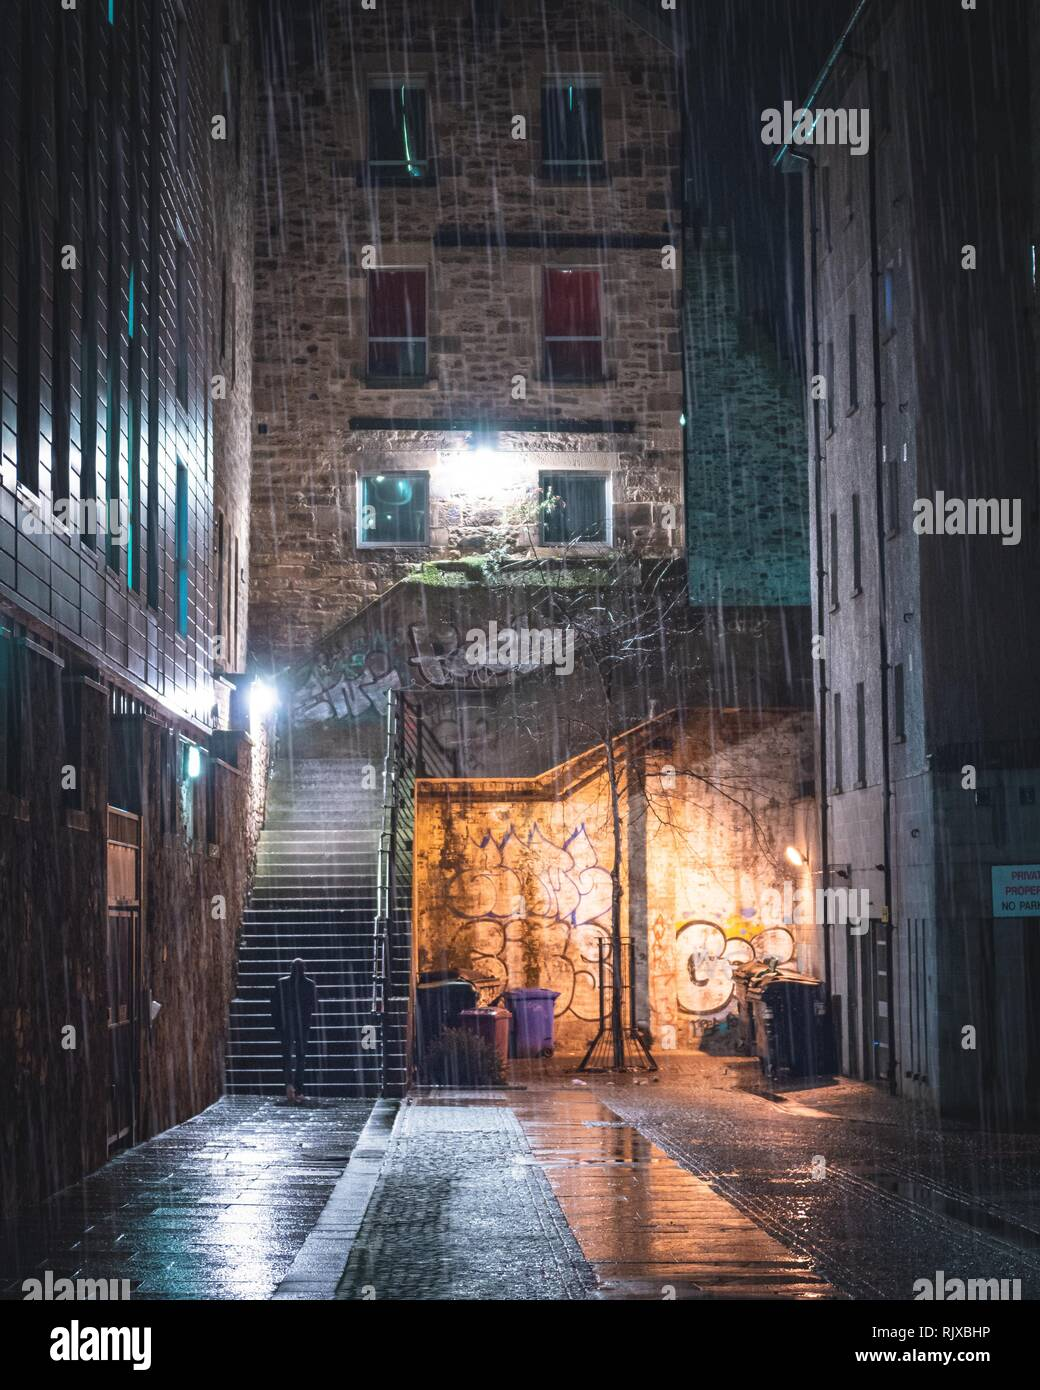 A singular figure about to climb some stairs down an alleyway in the city centre of Edinburgh, Scotland during the dark evening. The wet weather pours - Stock Image